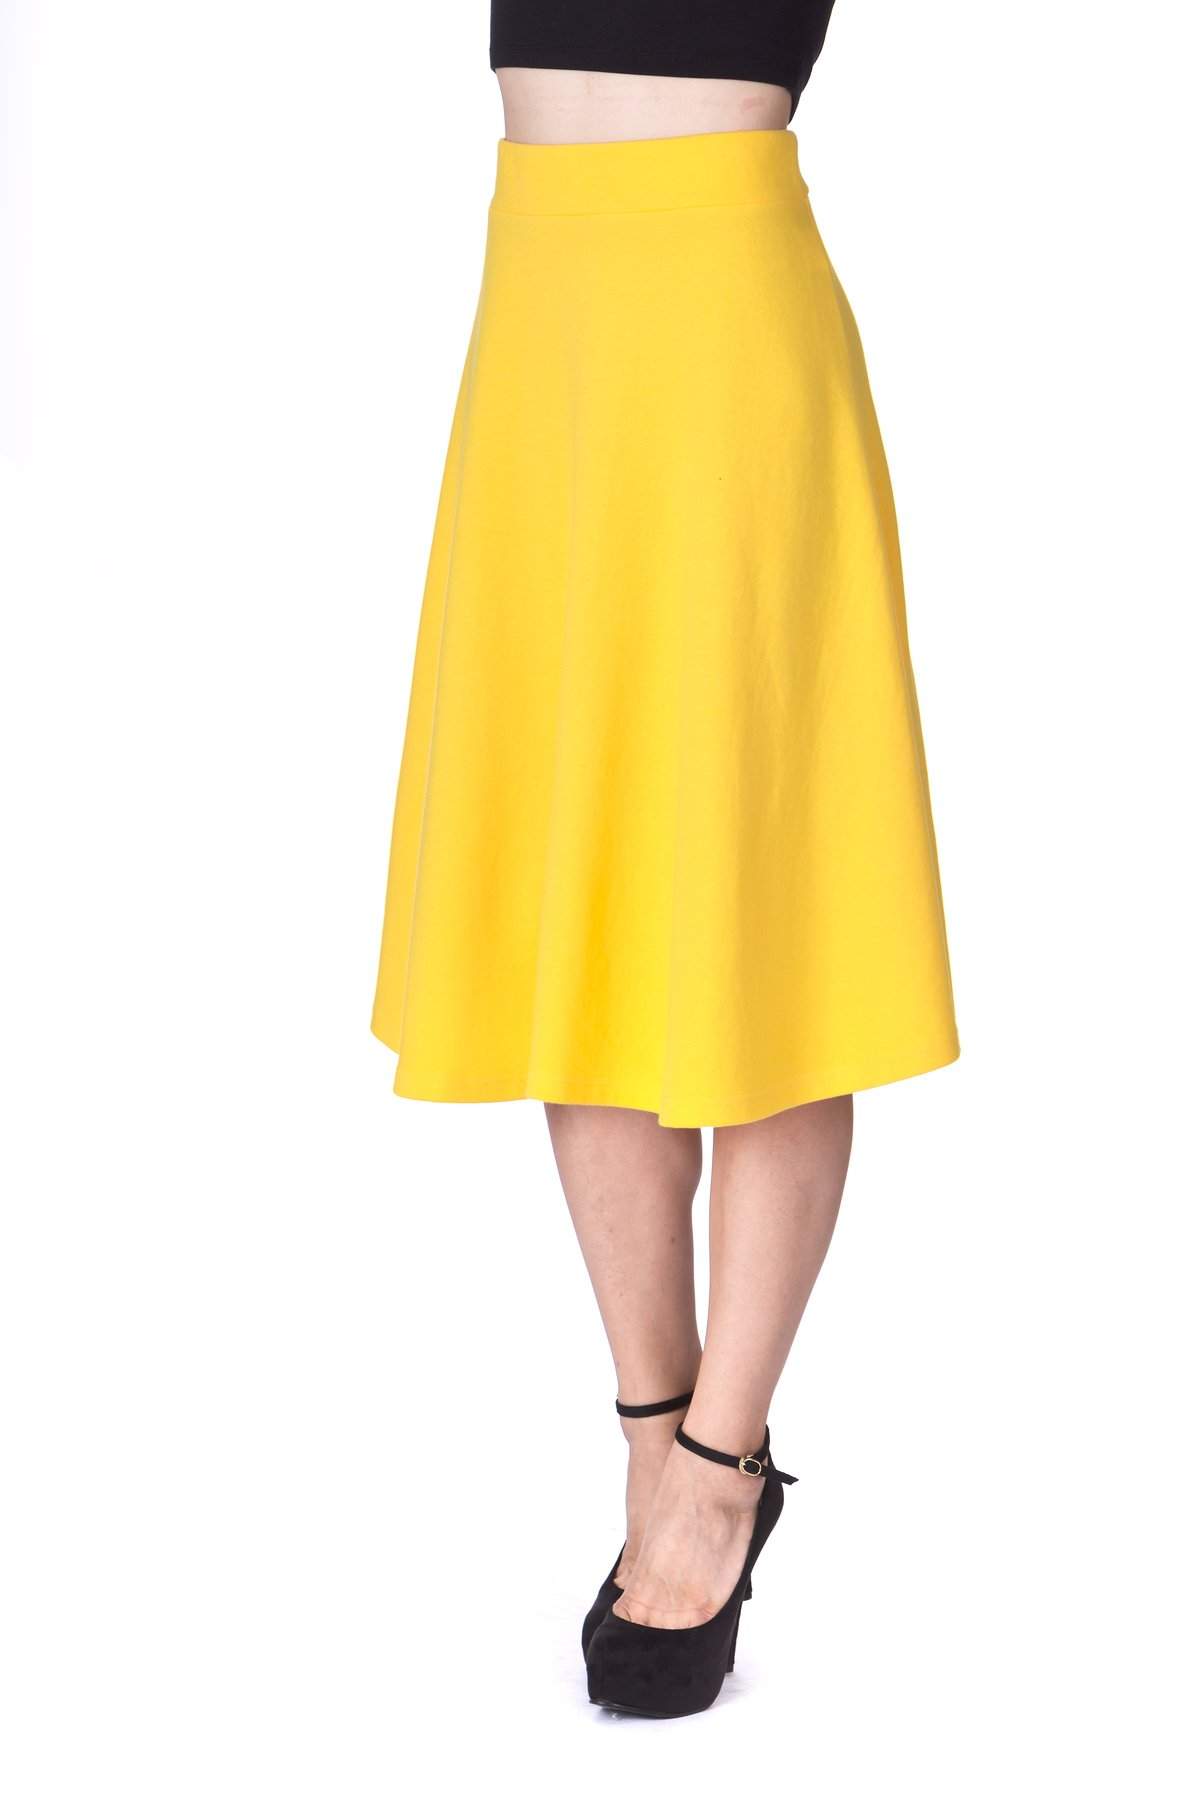 Everyday High Waist A Line Flared Skater Midi Skirt Yellow 05